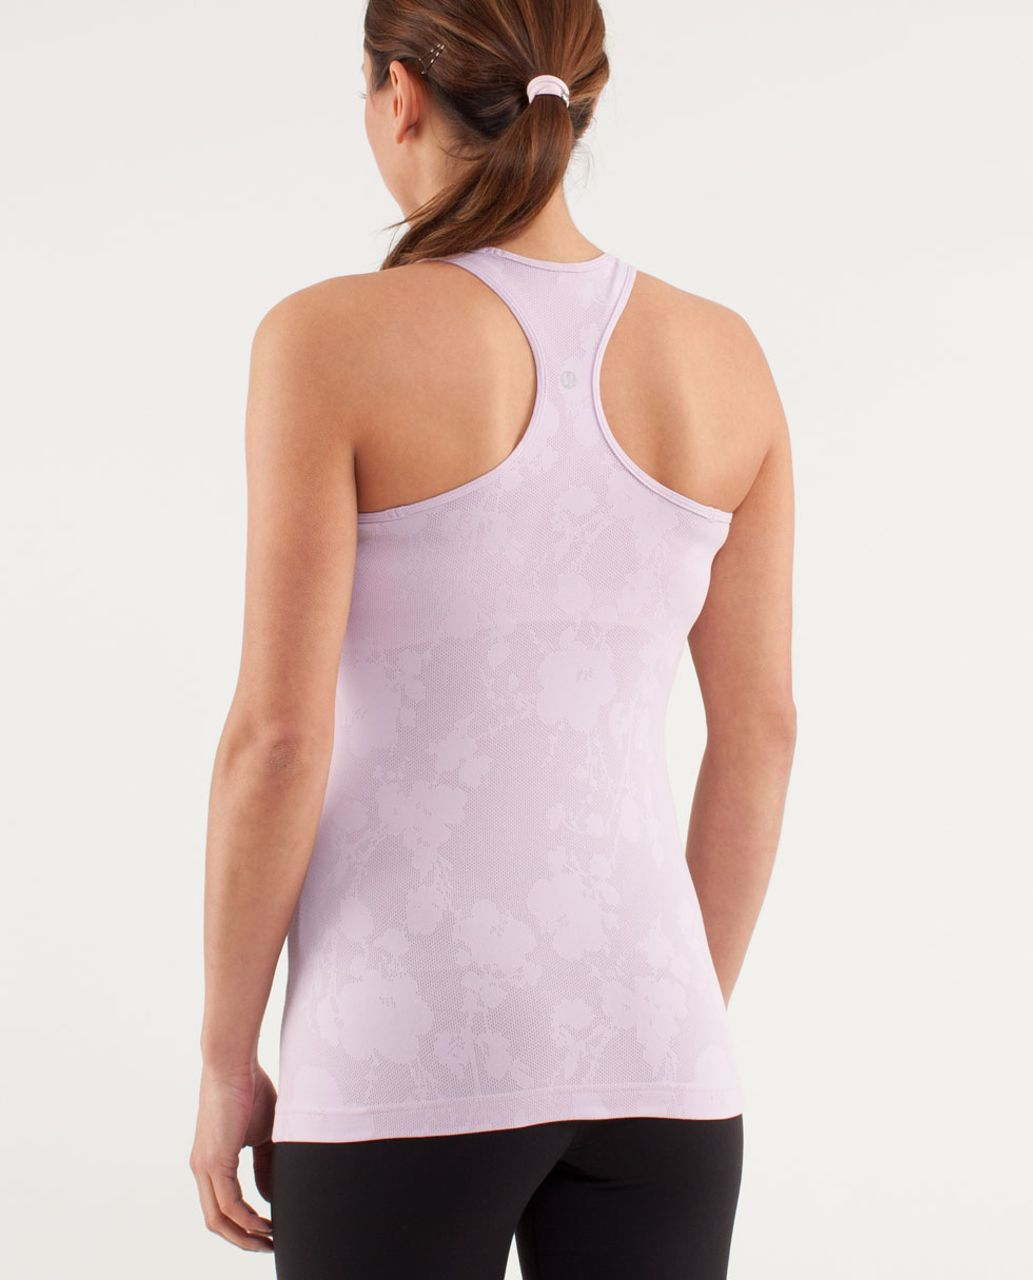 Lululemon Cool Racerback *Mesh - Rose Quartz